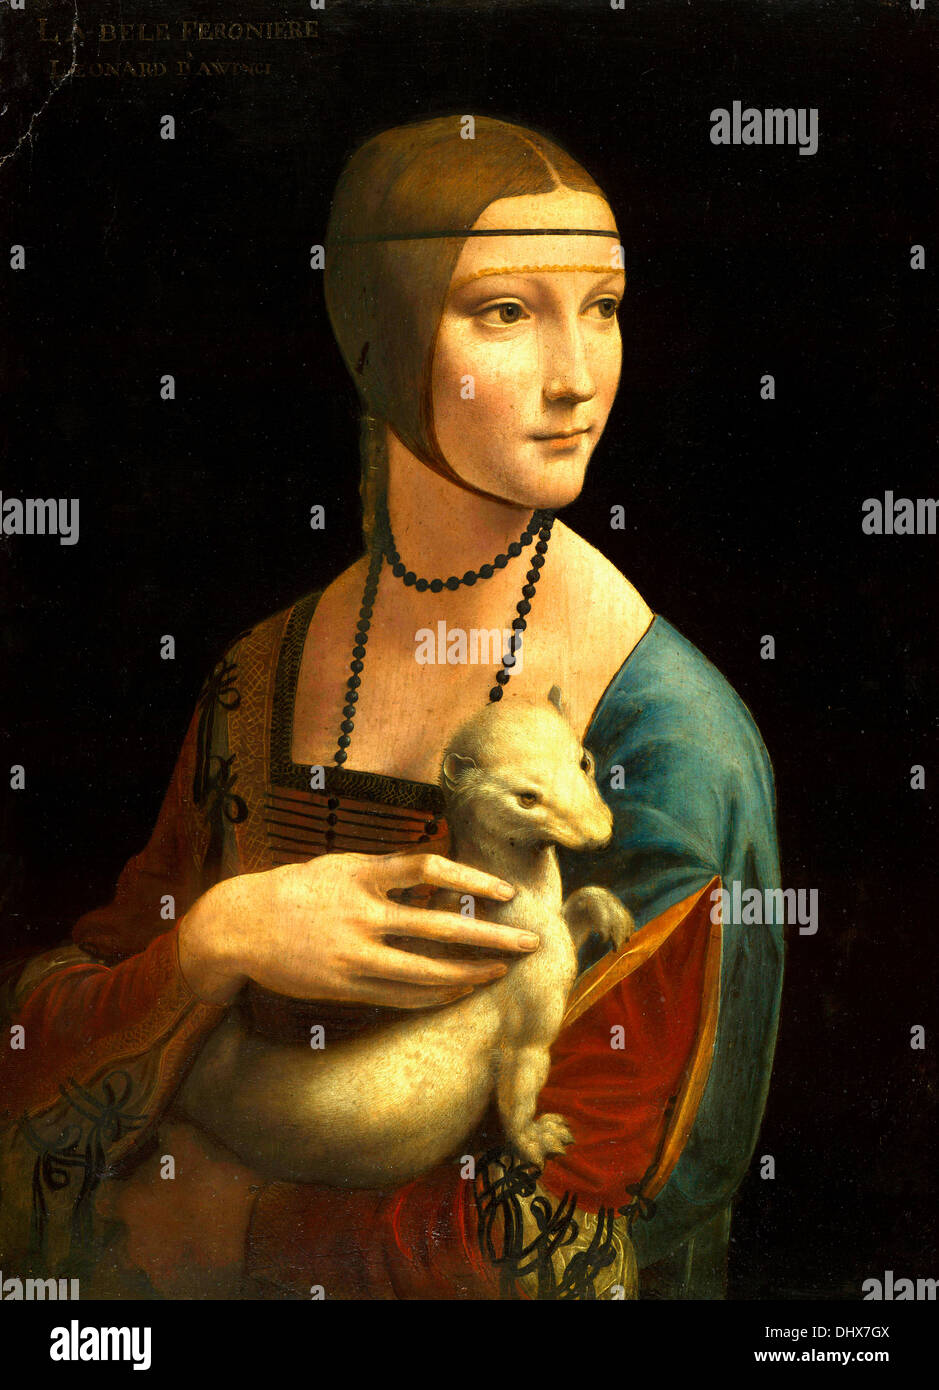 Lady with an Ermine is a painting by Leonardo da Vinci, 1489–1490 - Editorial use only. Stock Photo